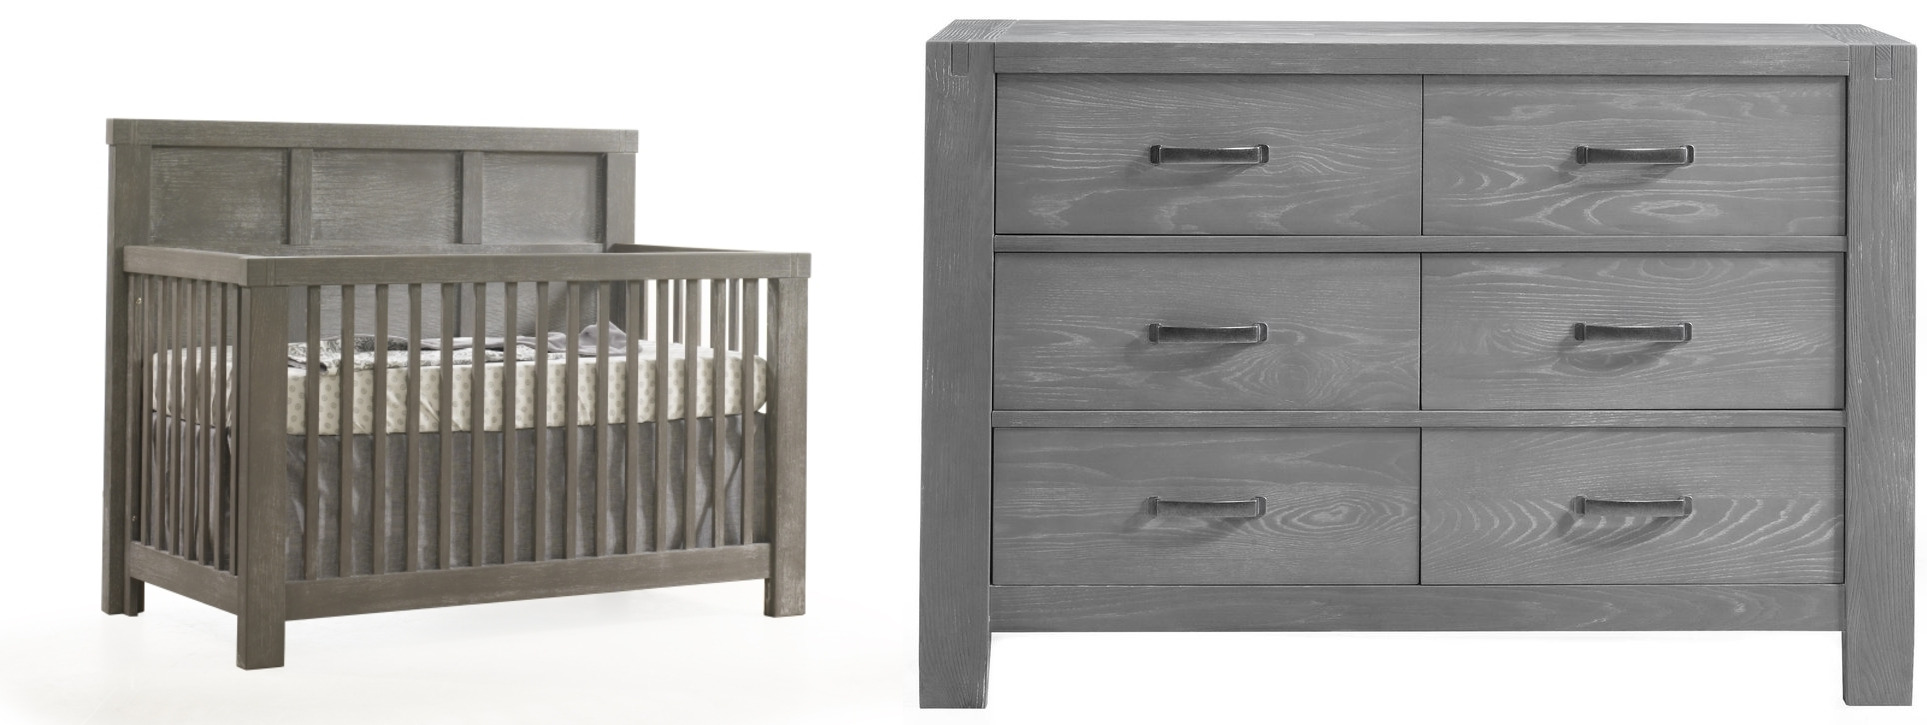 Natart Rustico Crib and Double Dresser - Owl